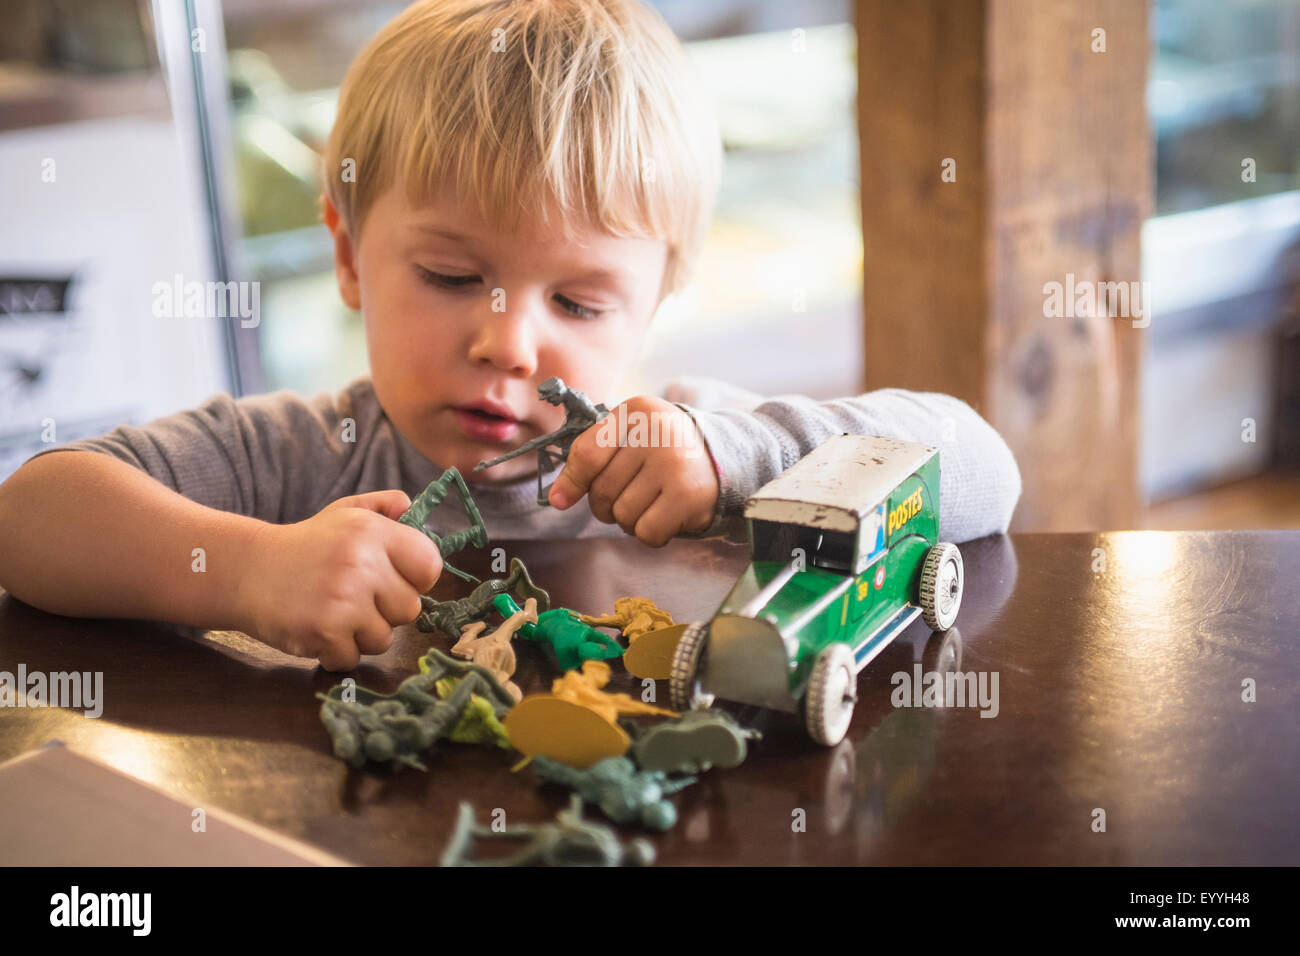 Caucasian boy playing with toys on table - Stock Photo